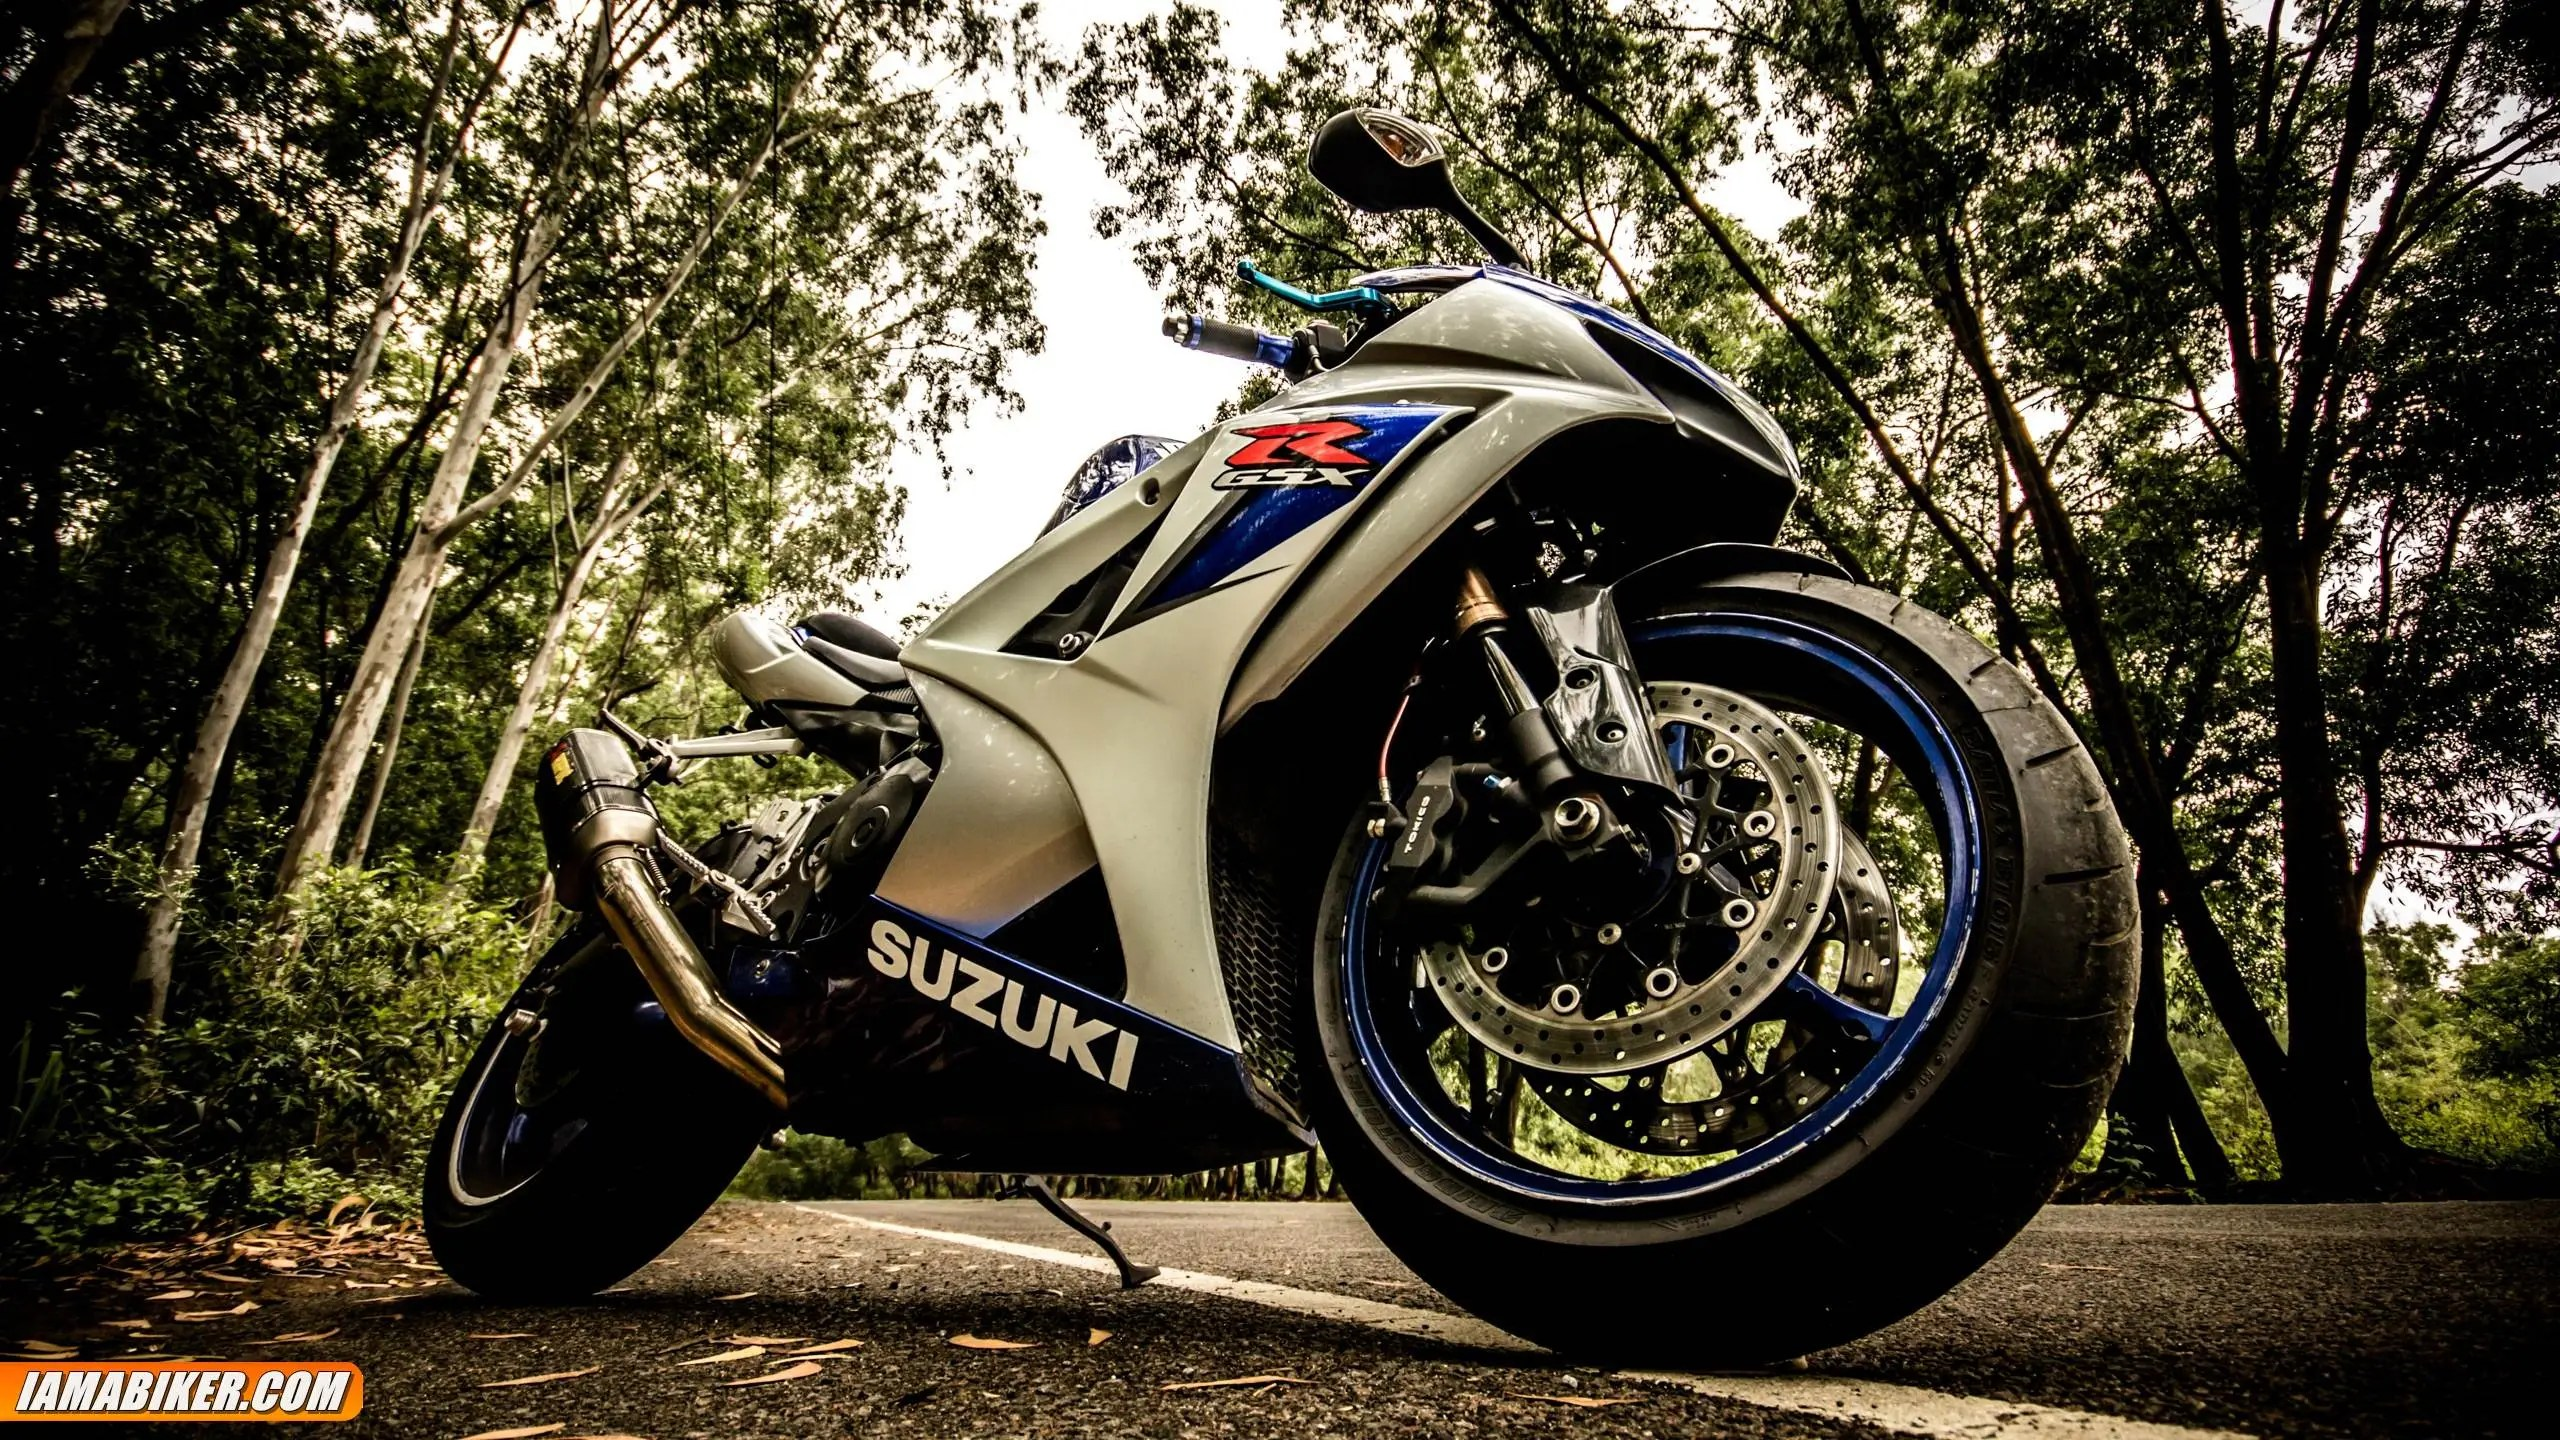 Suzuki GSX-R 1000 wallpapers - 07